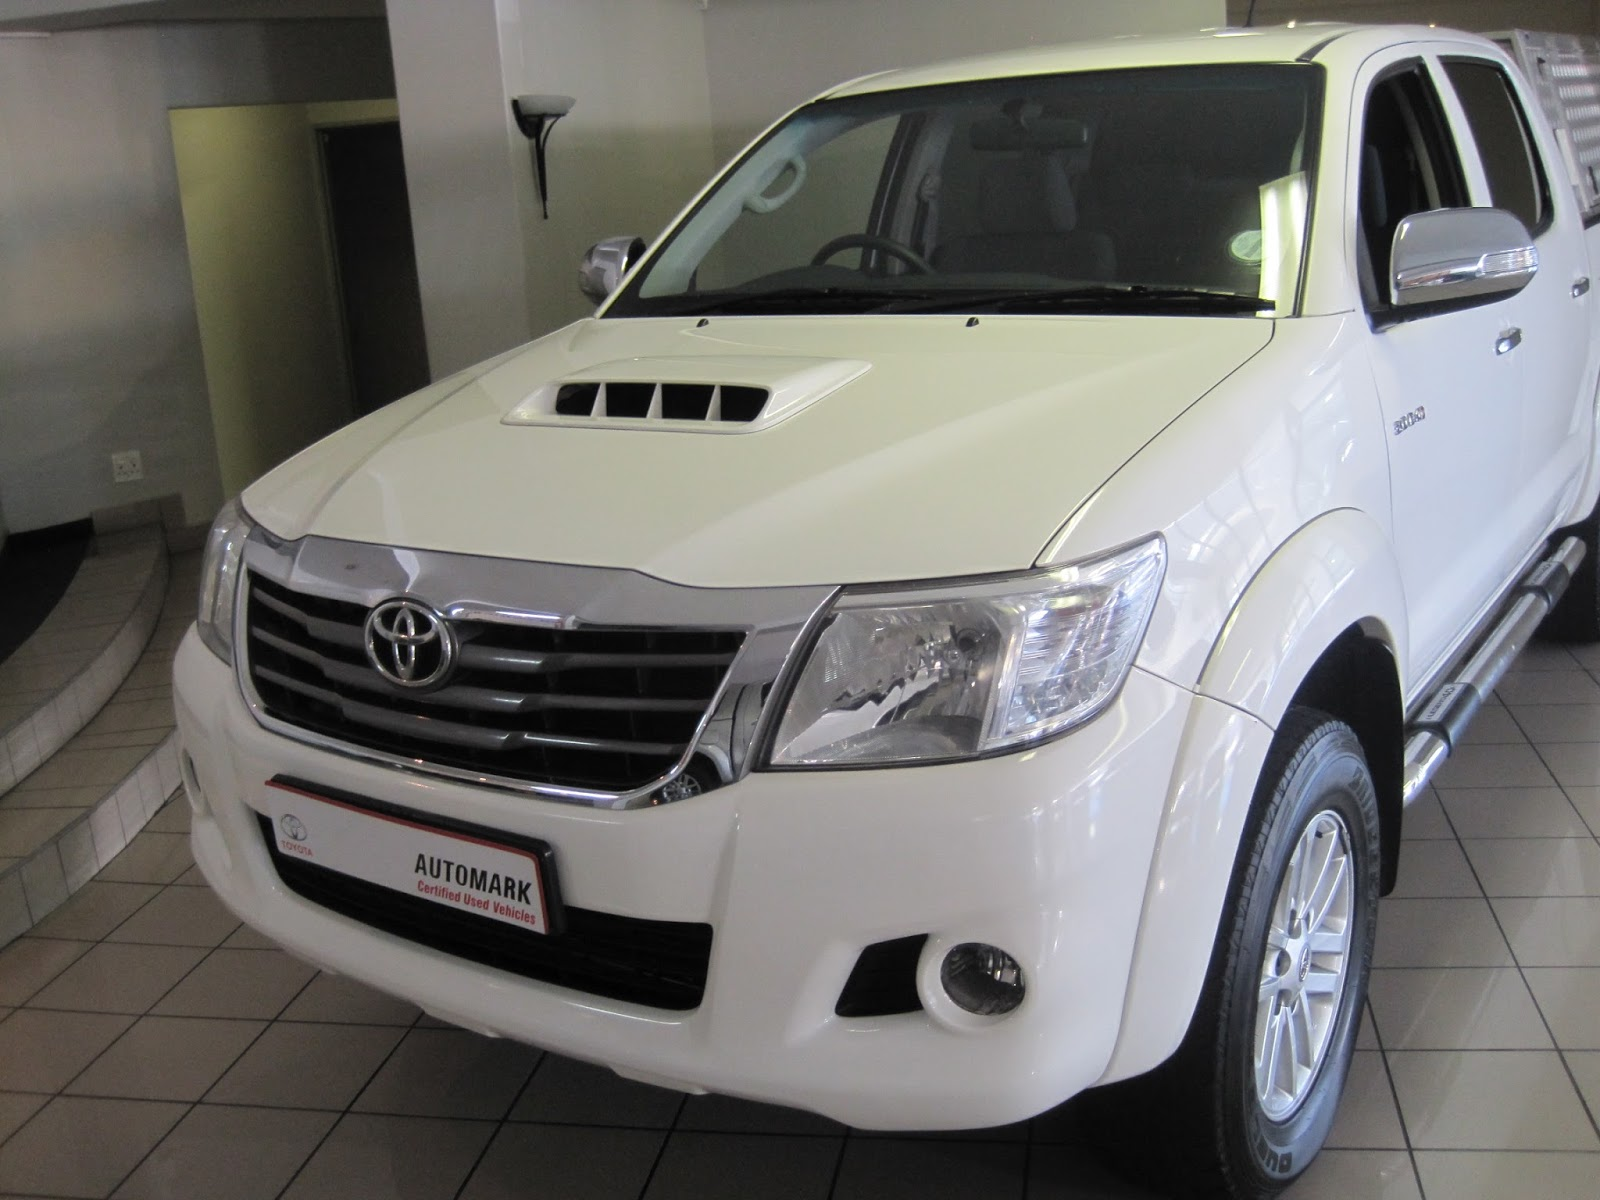 Used Automatic Cars for Sale Fresh Gumtree Second Hand Vehicles for Sale Cape town Olx Car Dealer